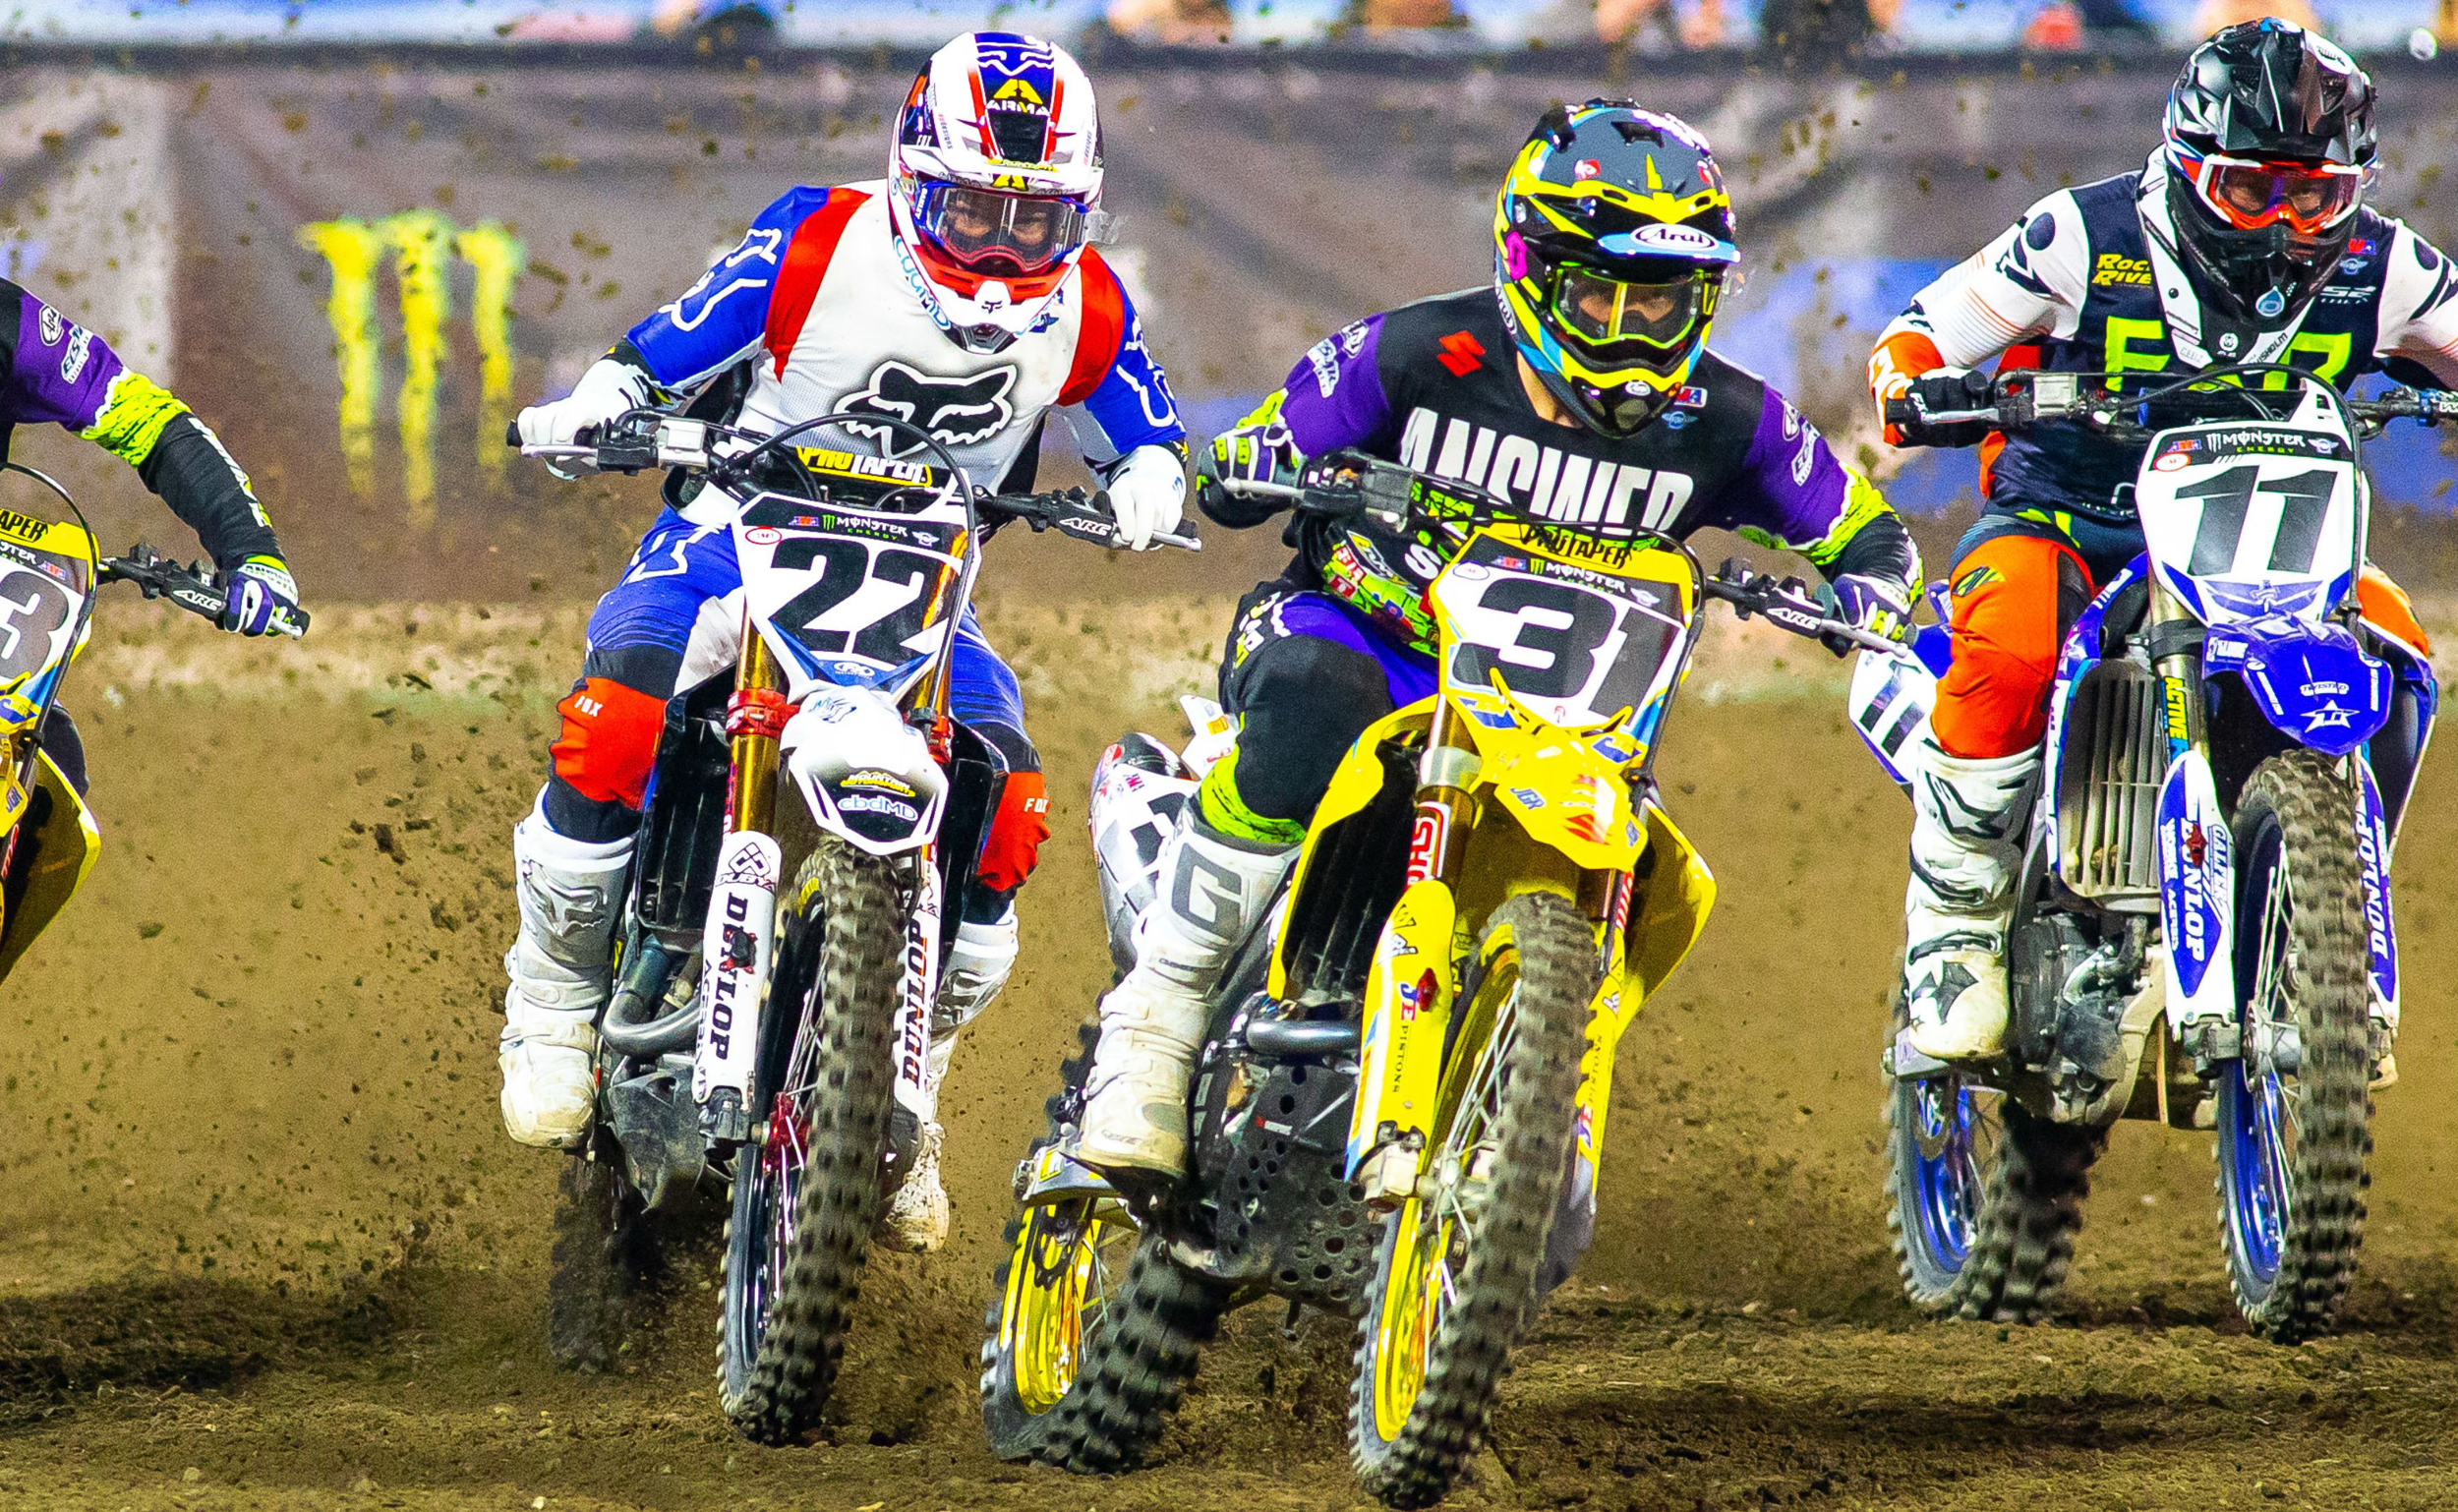 Freddie Noren (#31) put his RM-Z450 upfront during the 450SX Main Event. [2]